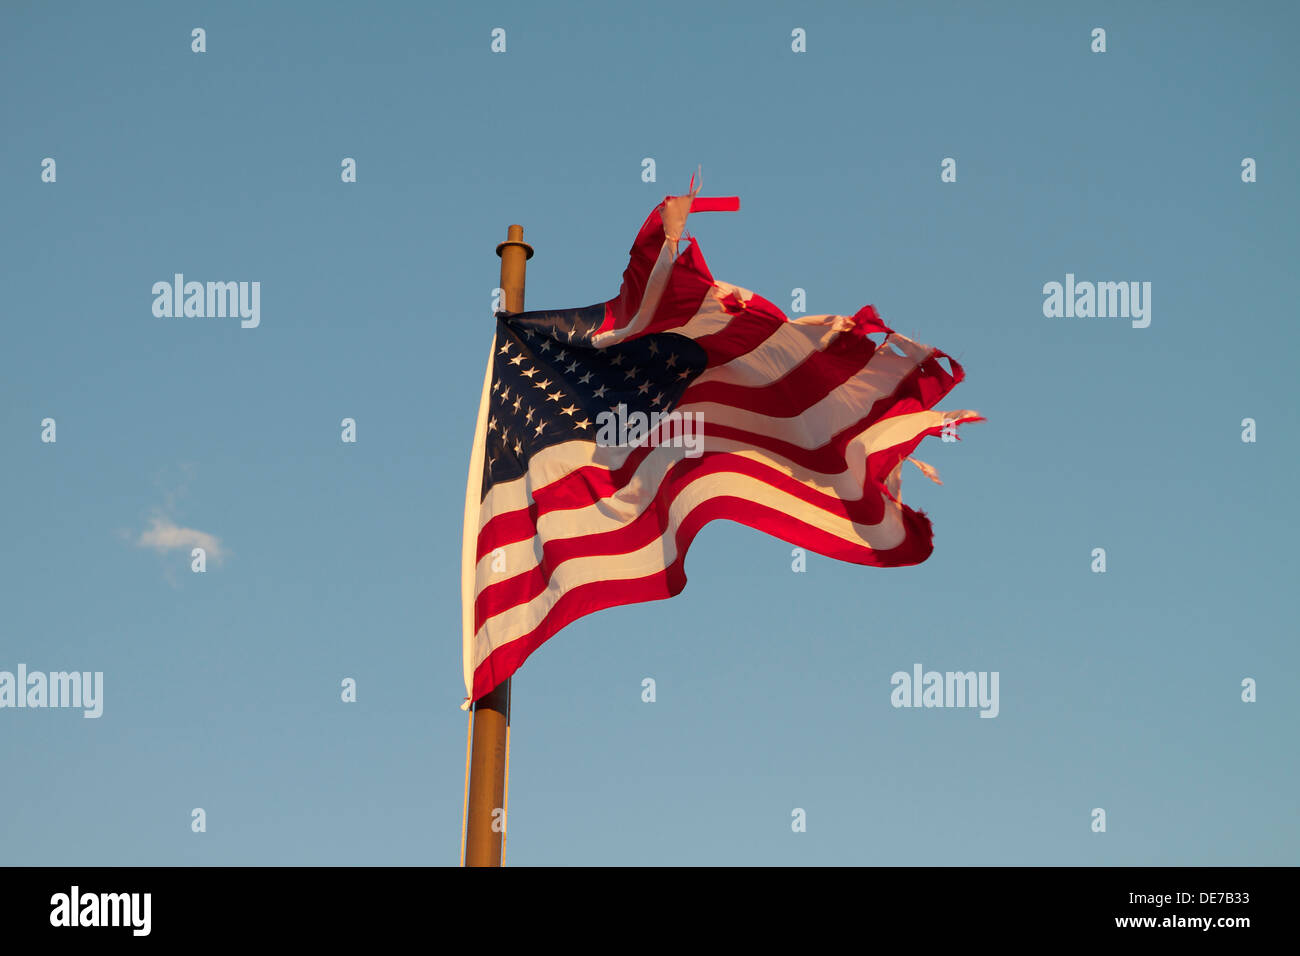 A old torn and tattered American flag flying on a flagpole - Stock Image